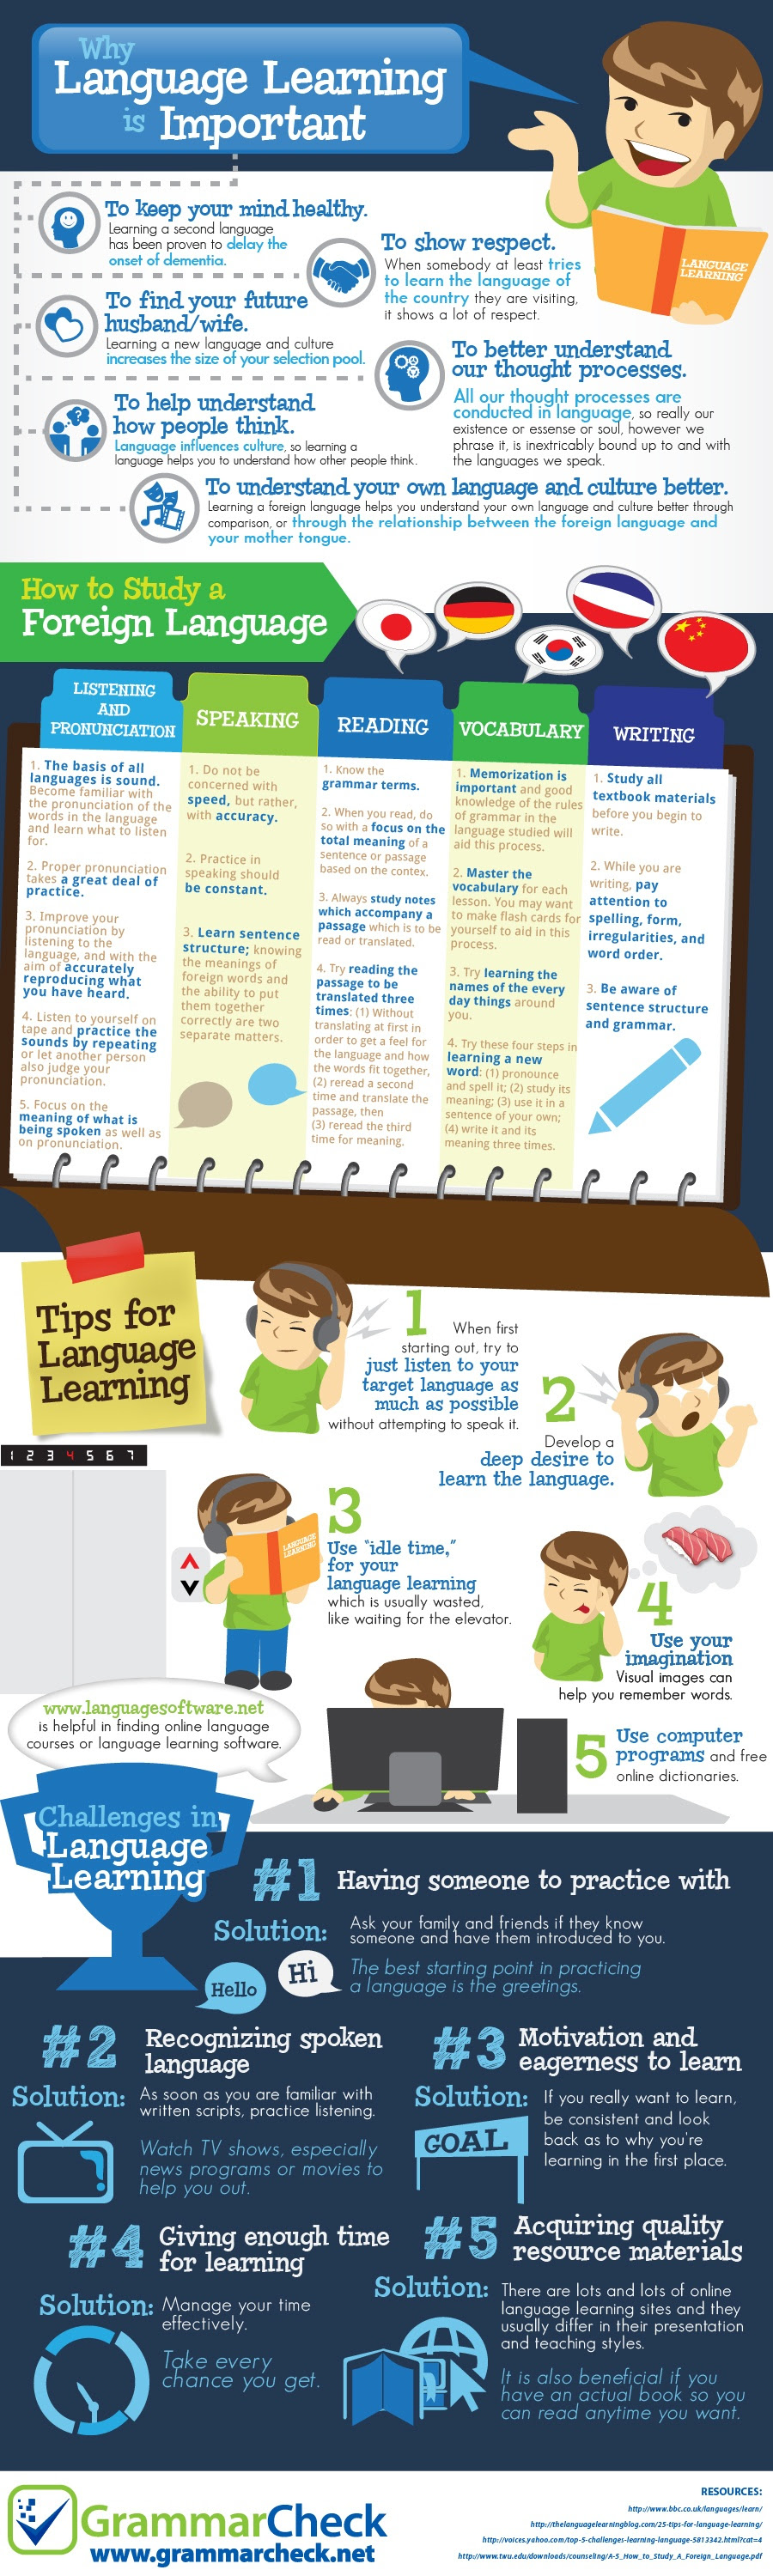 Why-Language-Learning-is-Important-Infographic